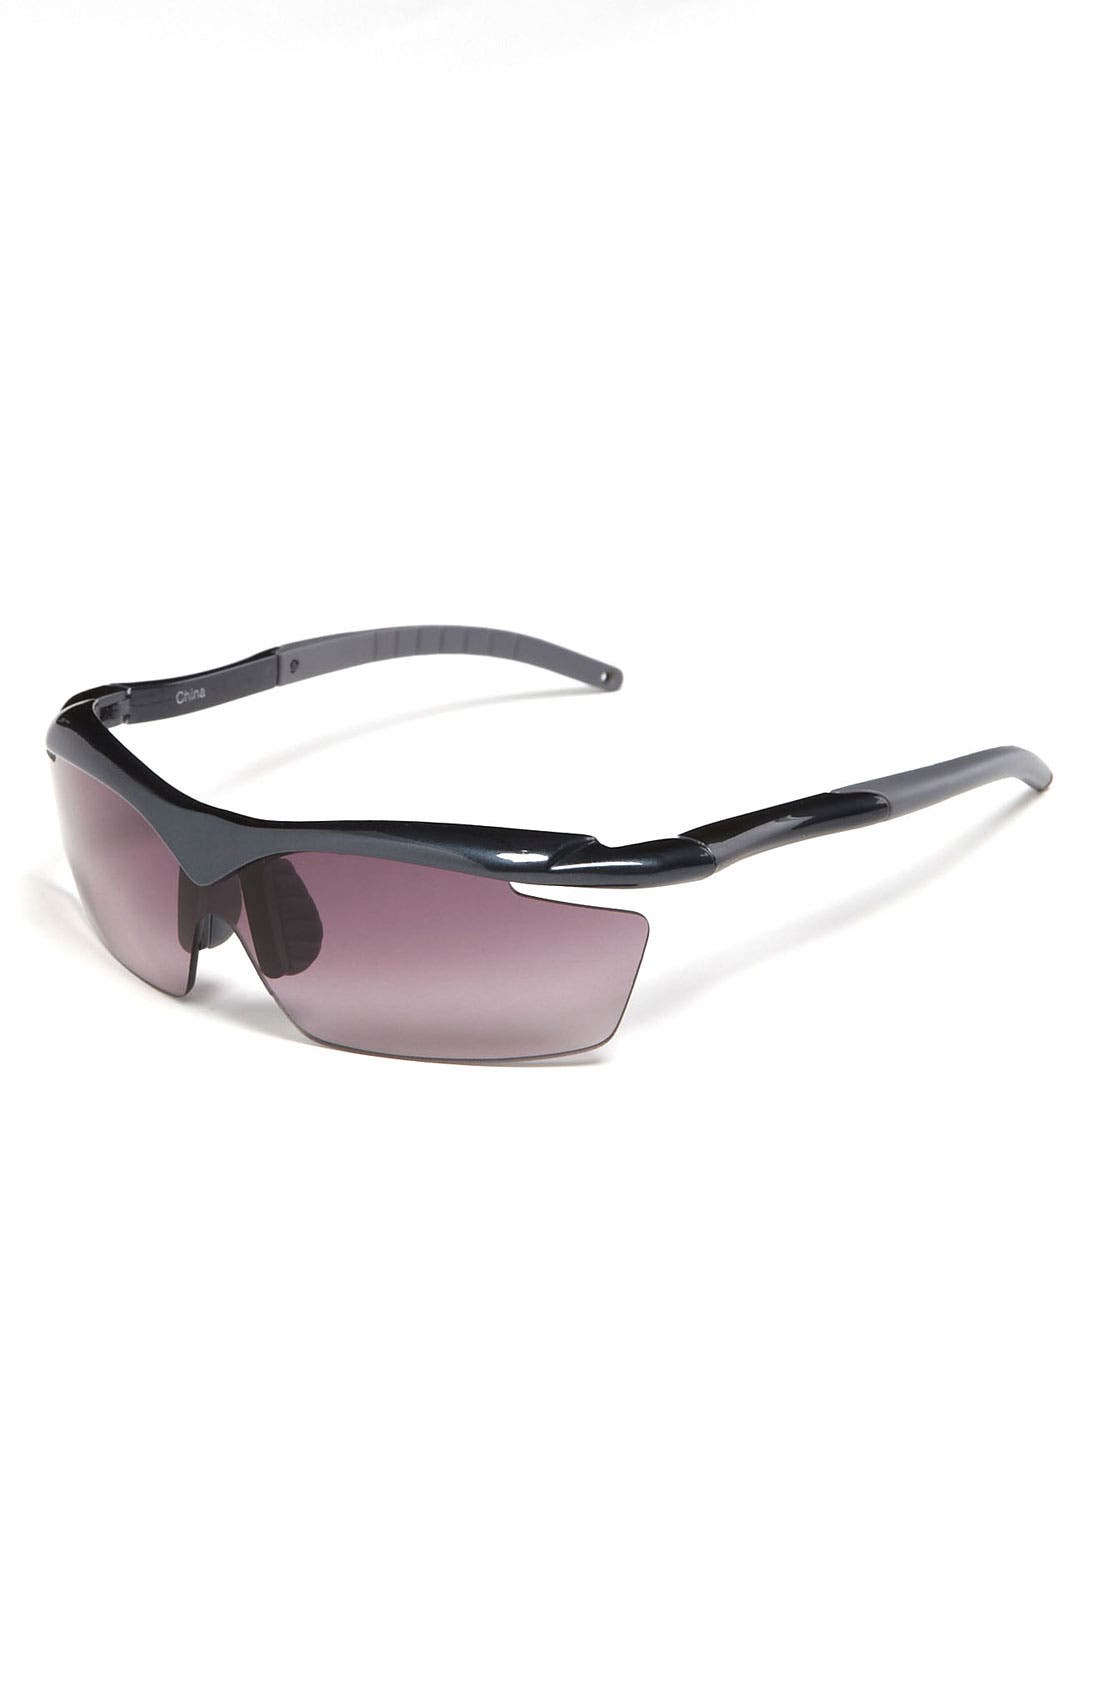 Alternate Image 1 Selected - Icon Eyewear 'Ryan' Sport Wrap Sunglasses (Big Boys)